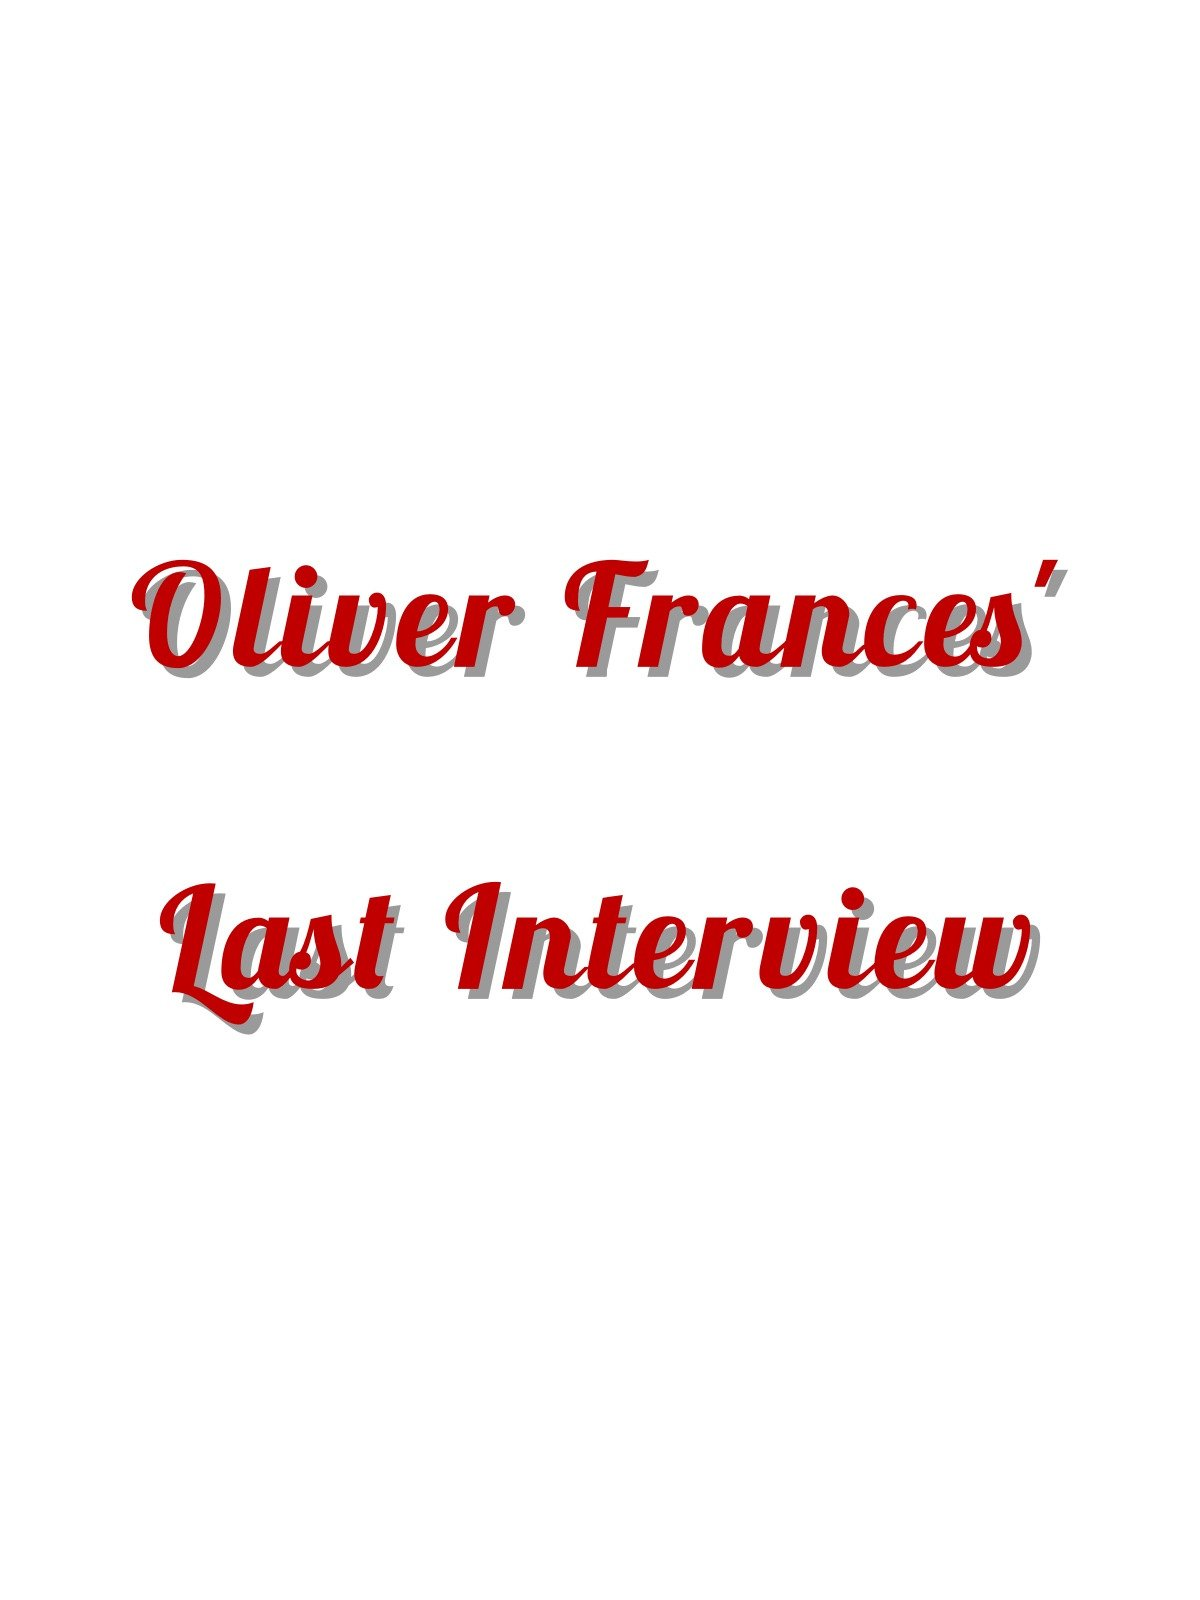 Oliver Frances' Last Interview